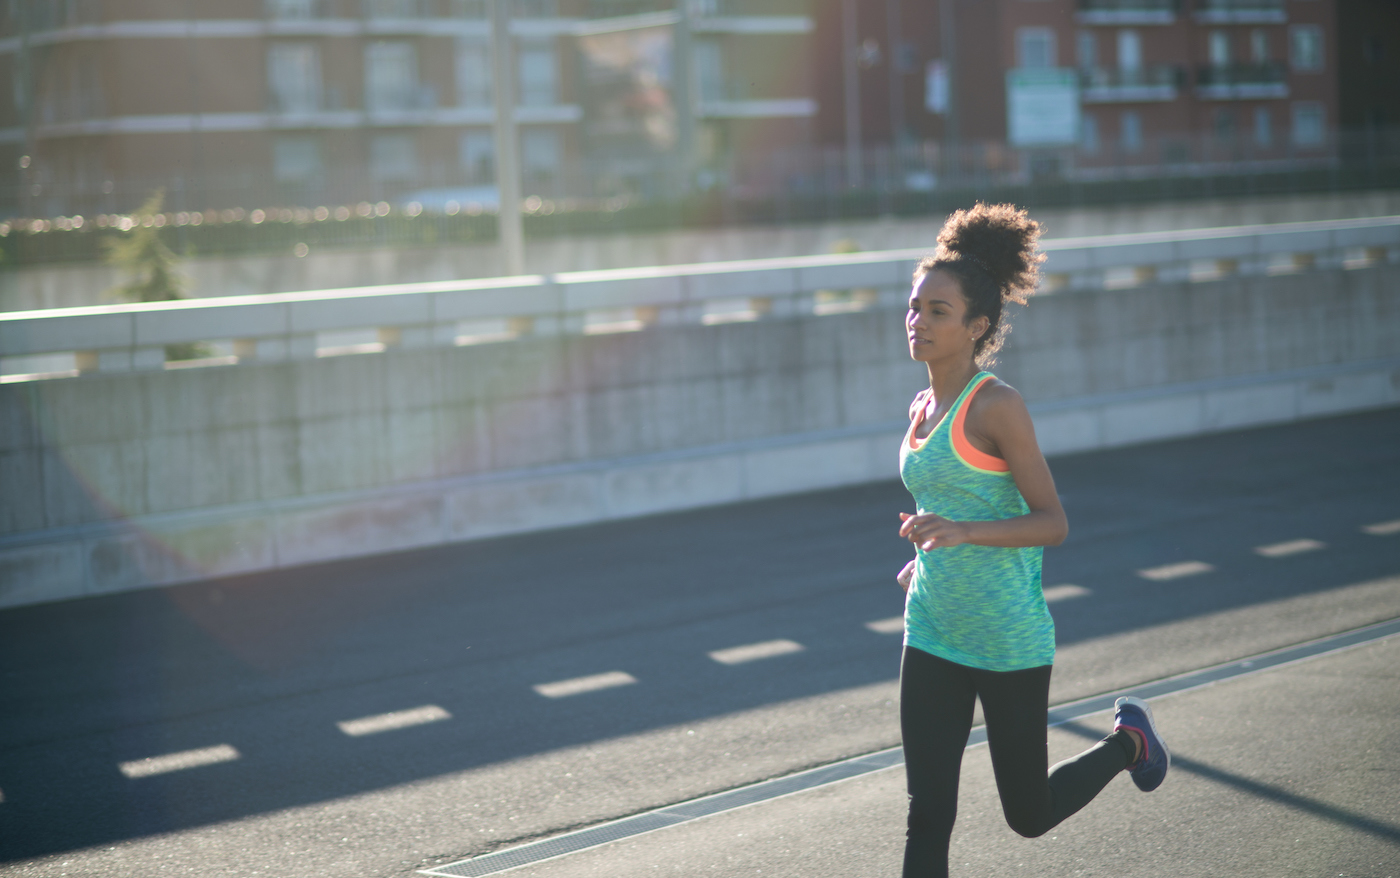 What a Sports Physiologist Says About Exercising in Dry Heat vs Humidity